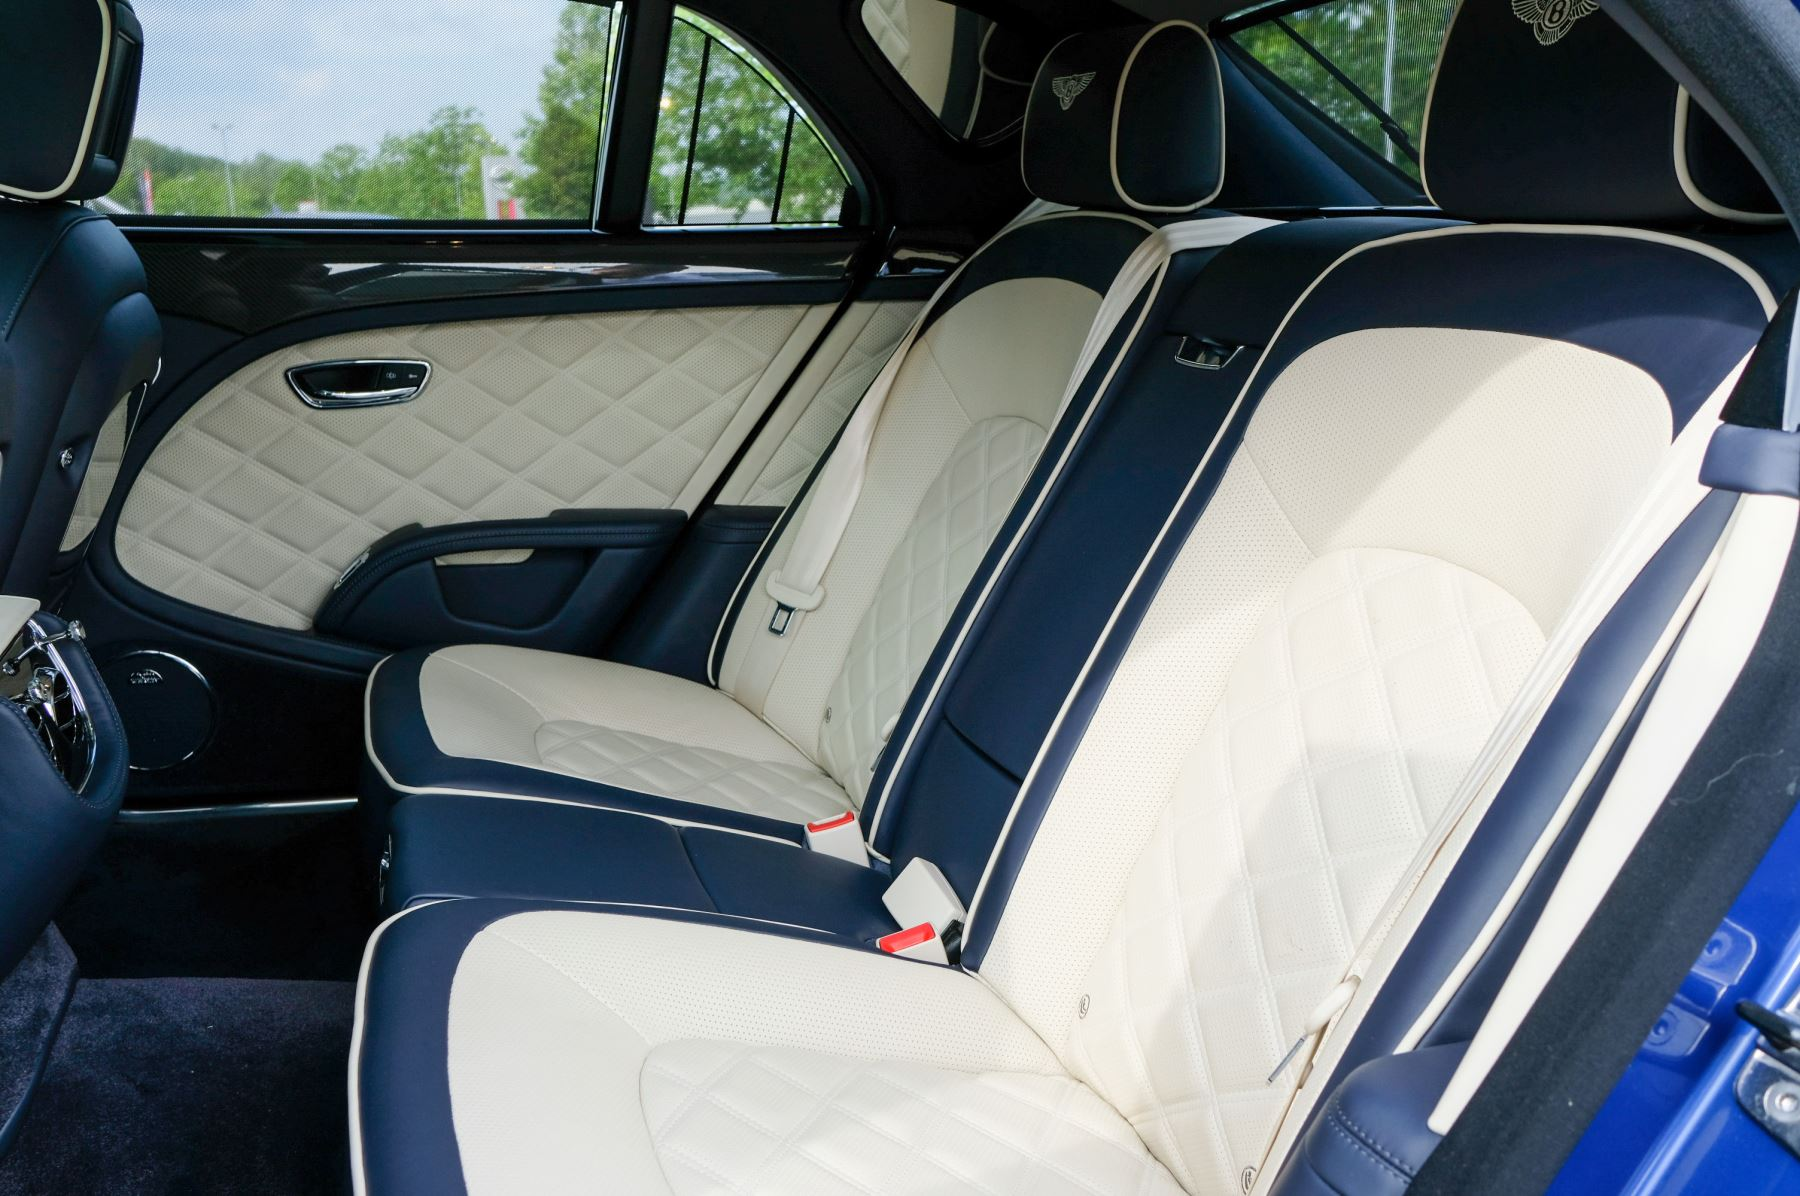 Bentley Mulsanne Speed 6.8 V8 Speed - Speed Premier and Entertainment Specification image 20